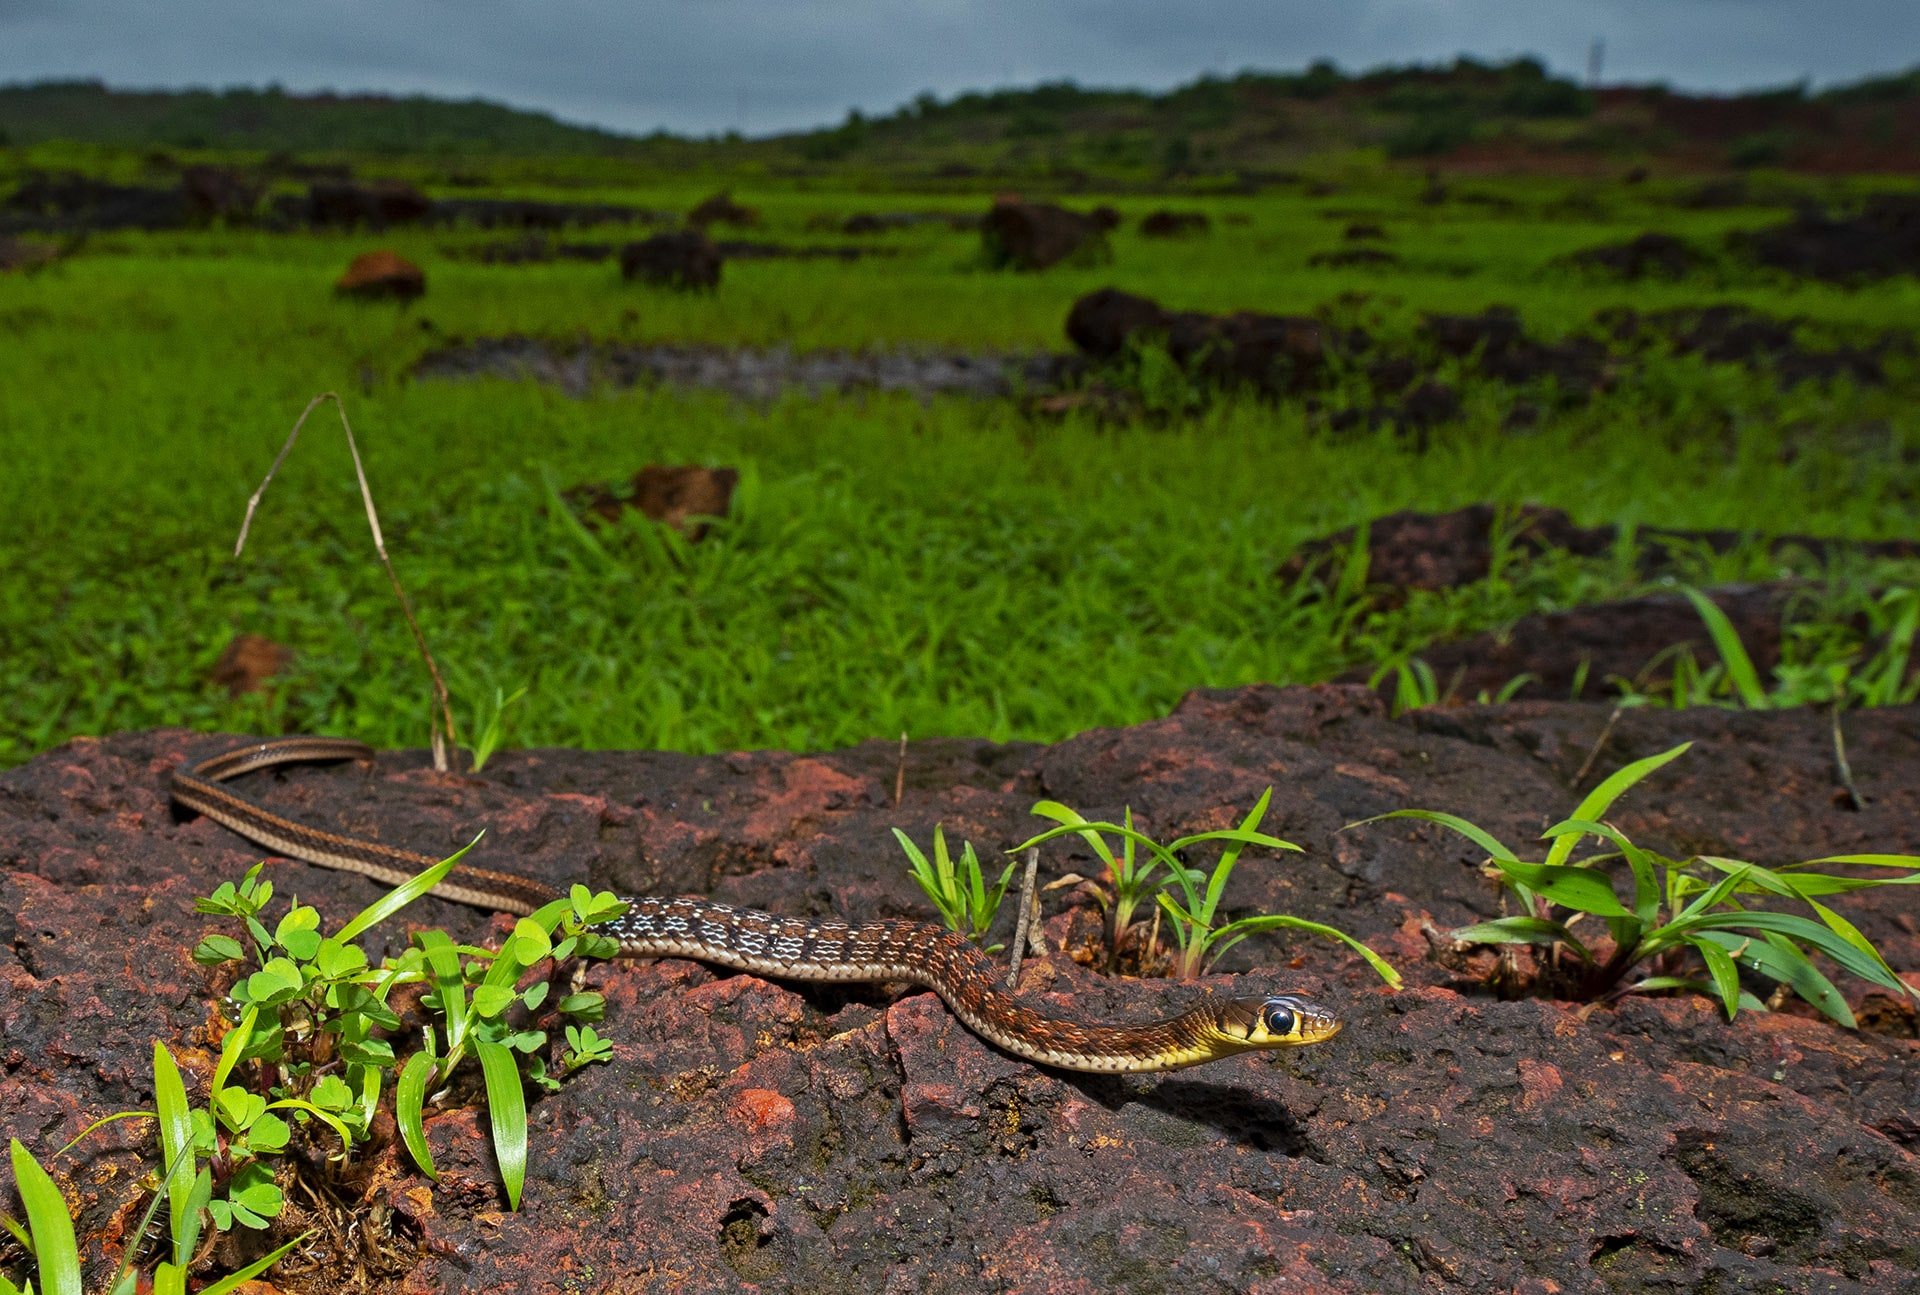 This habitat has a thriving population of snakes, ranging from the venomous Ssaw-scaled viper (Echis carinatus) (top), to the relatively harmless Sstriped keelback (Amphiesma stolatuma) (below)